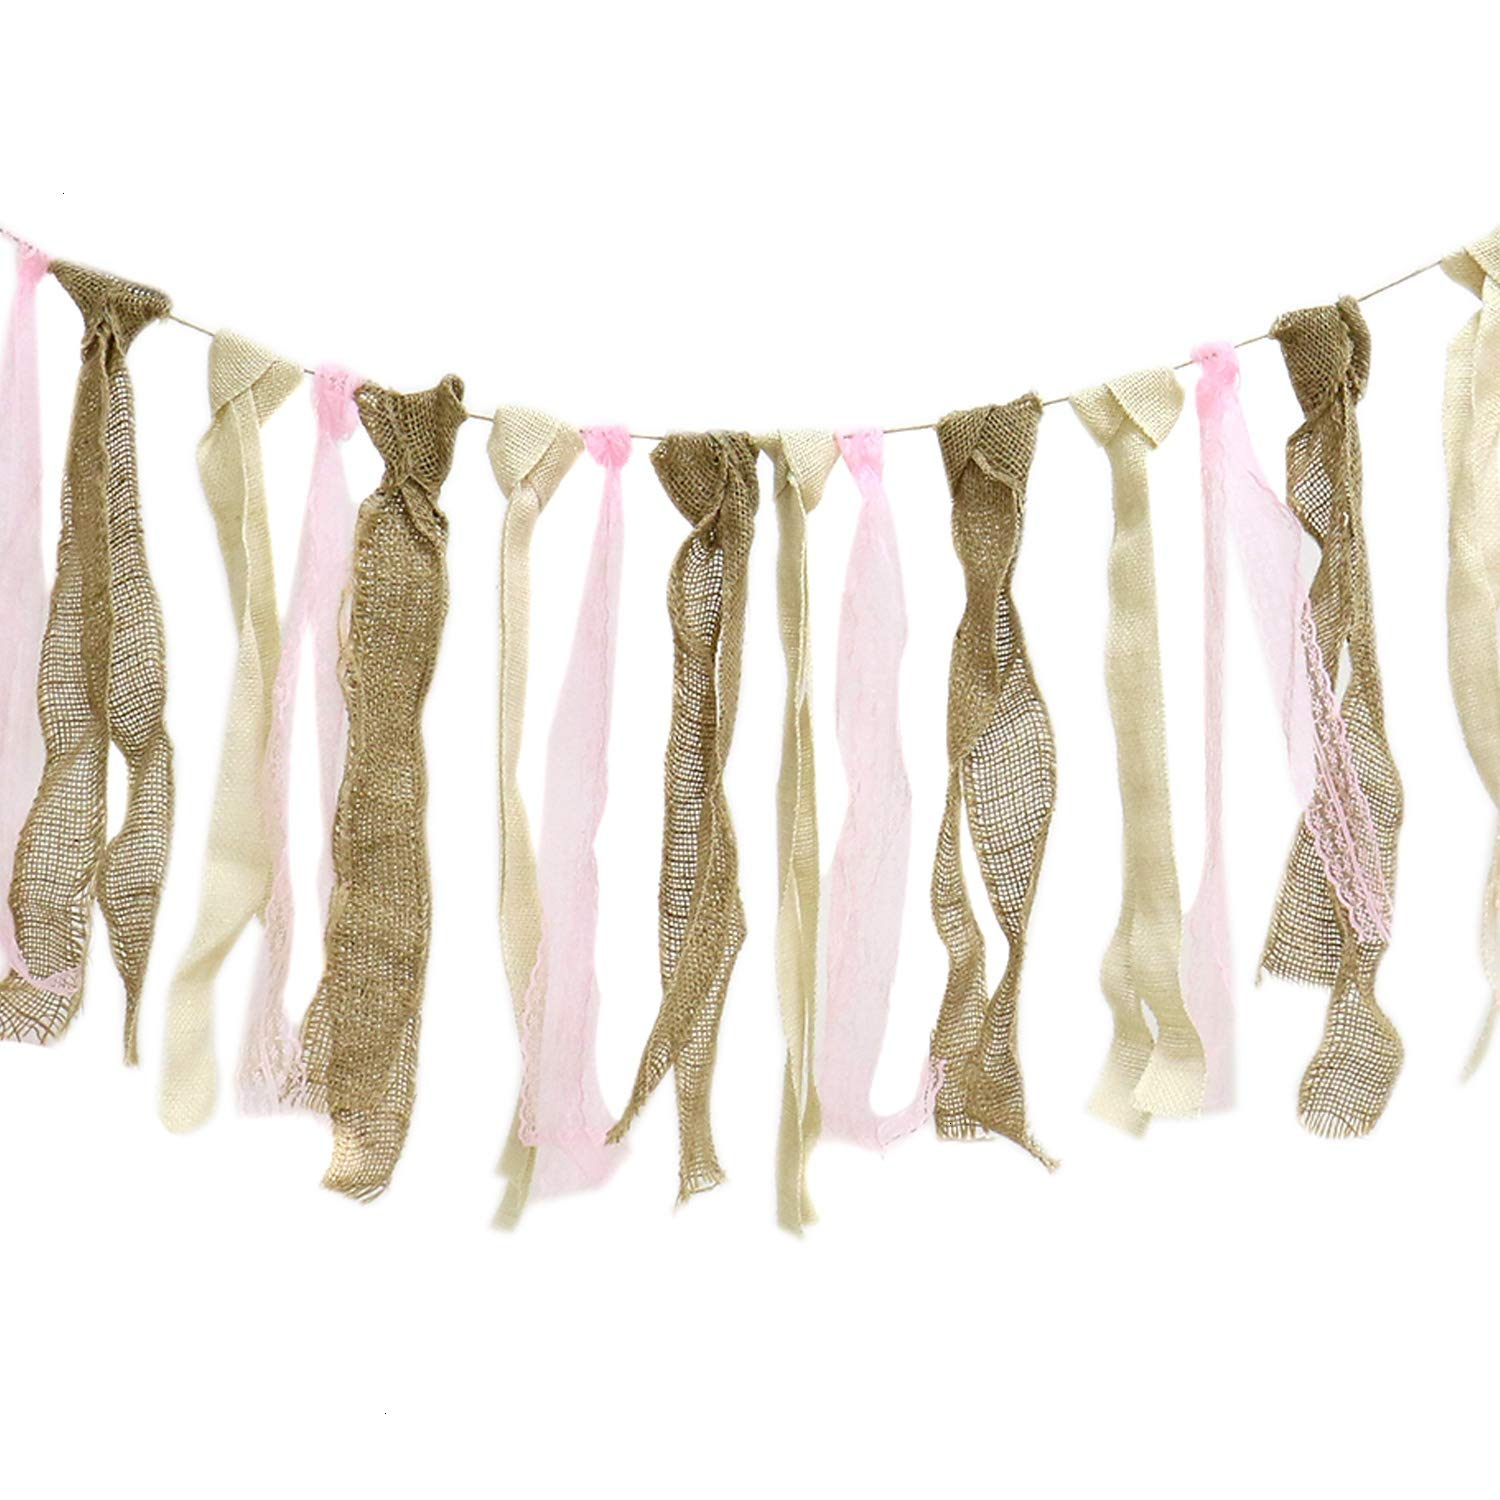 MAISHO 5.2 ft Rustic Burlap Lace Garland Burlap Lace Rag Tie Banner Fall Thanksgiving Decor Rustic Wedding Garland Boho Chic Lace Bunting